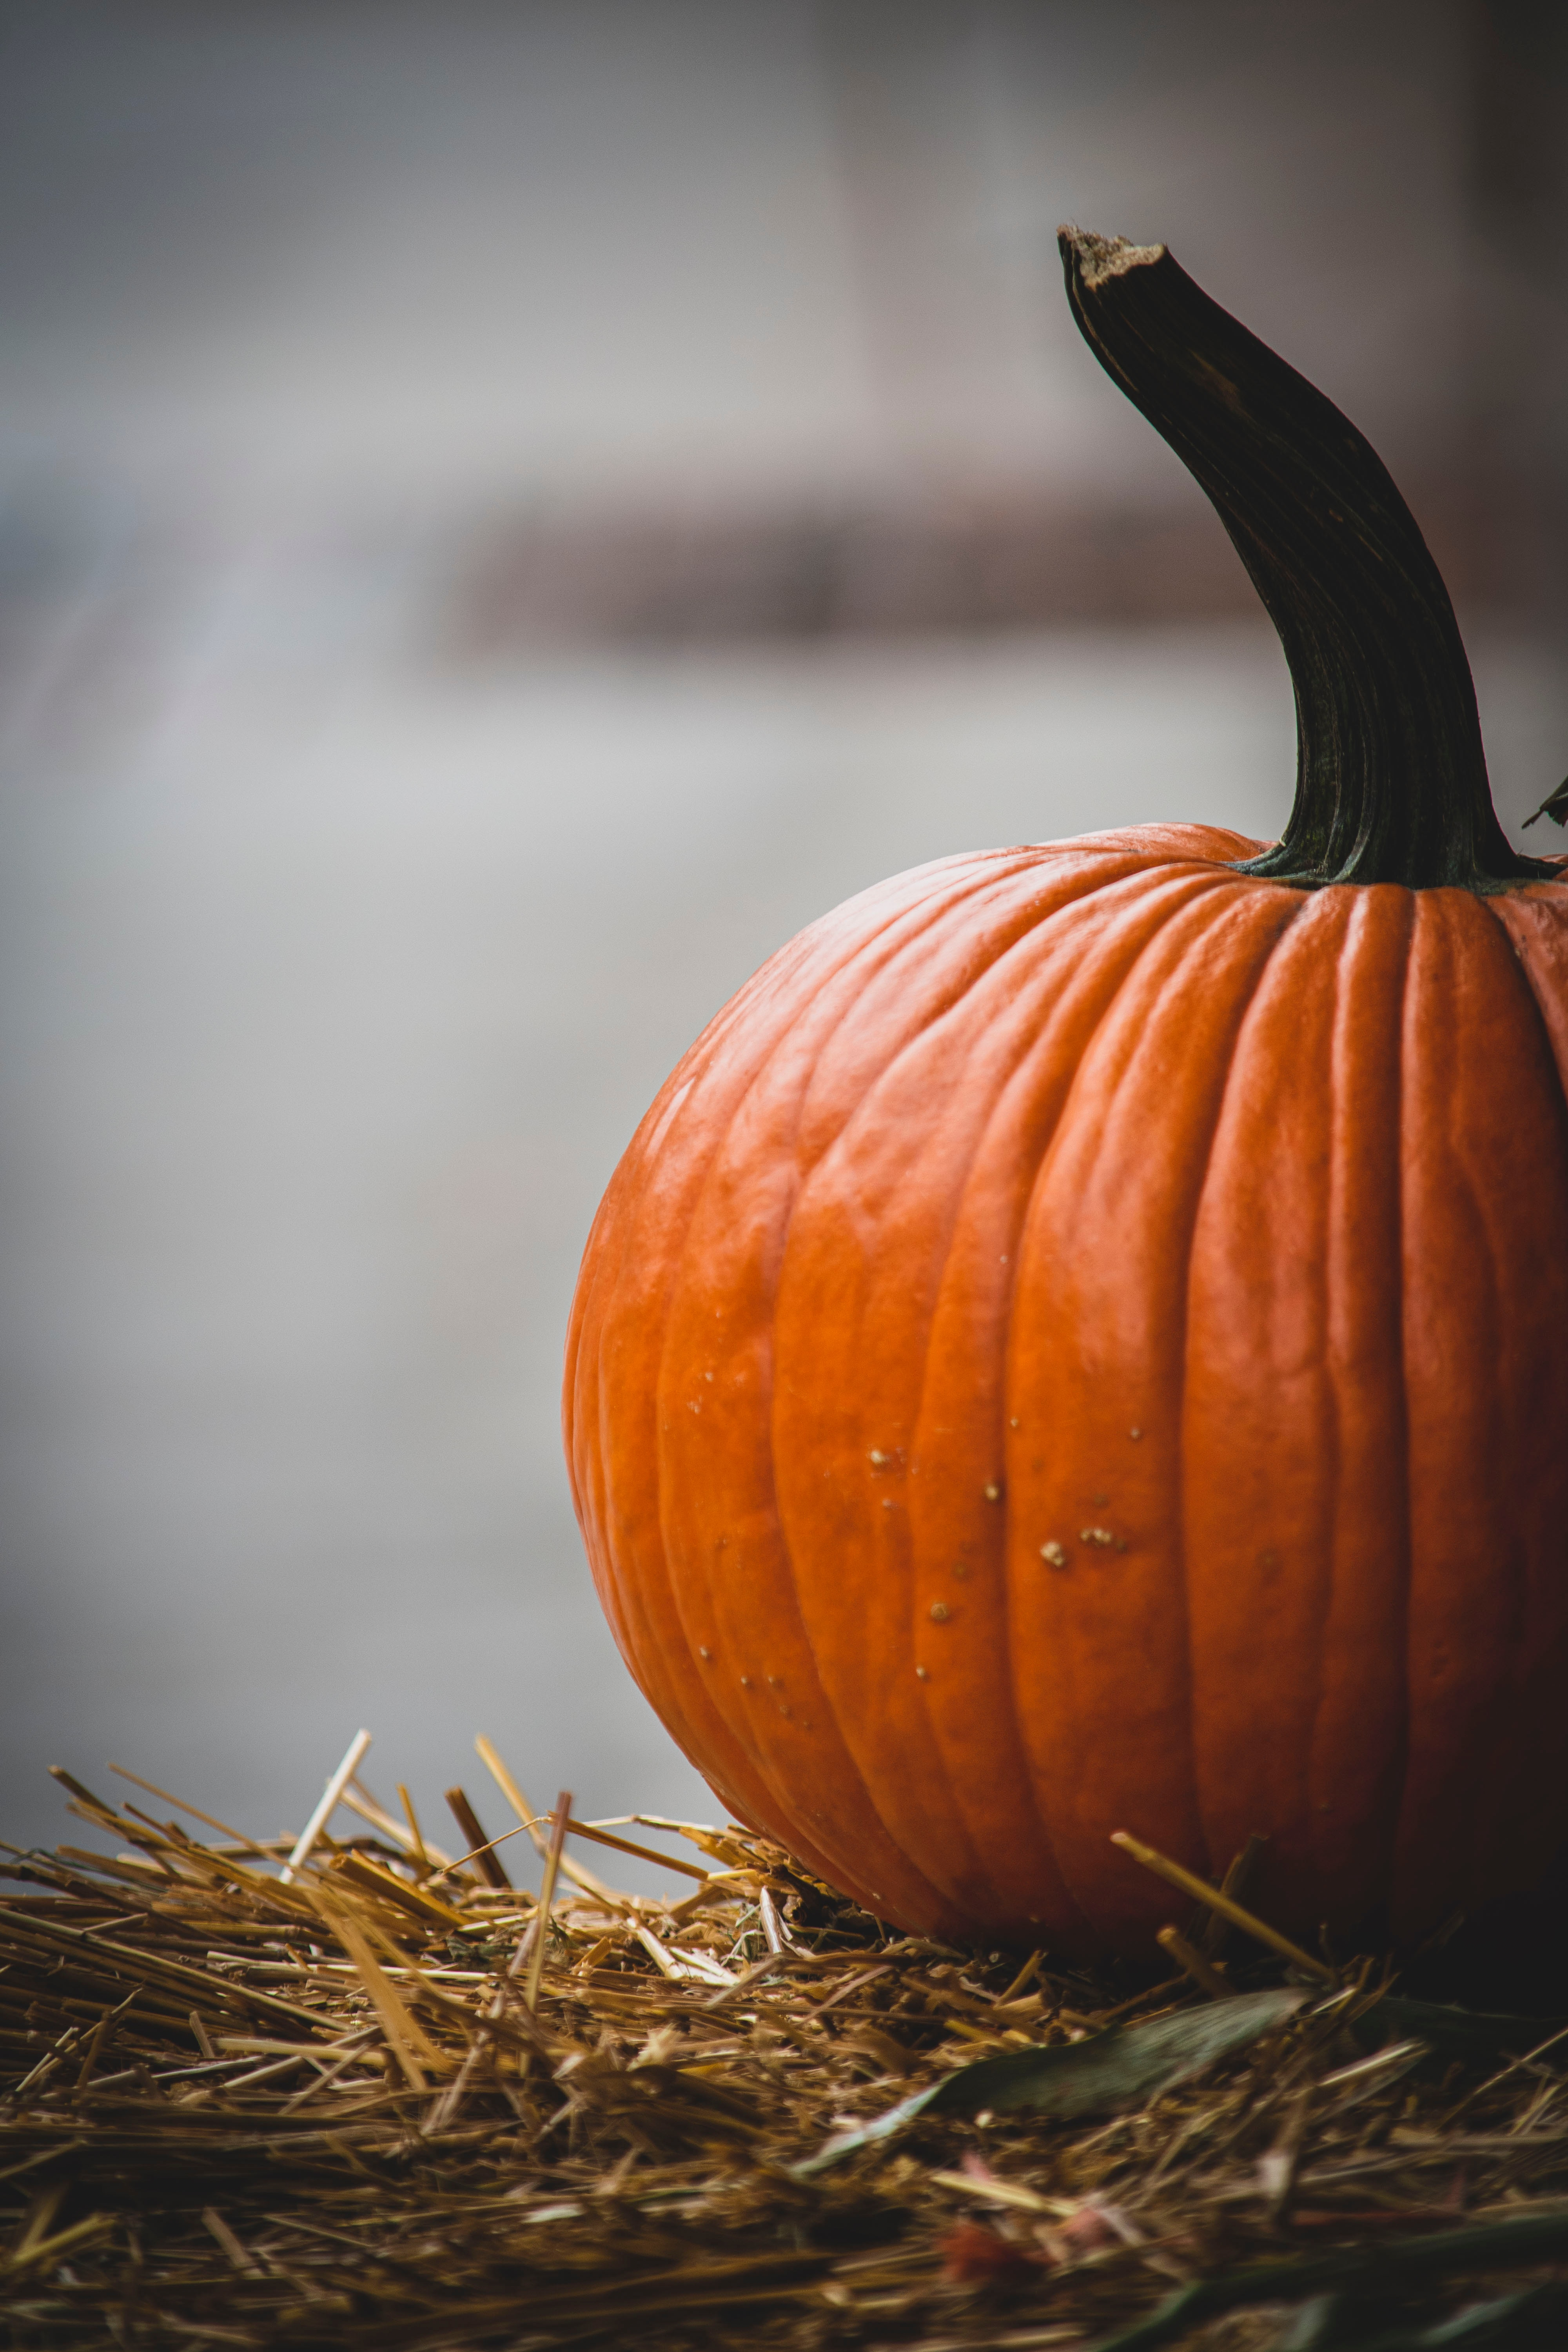 83833 Screensavers and Wallpapers Pumpkin for phone. Download Food, Pumpkin, Ripe, Harvest, Vegetable pictures for free